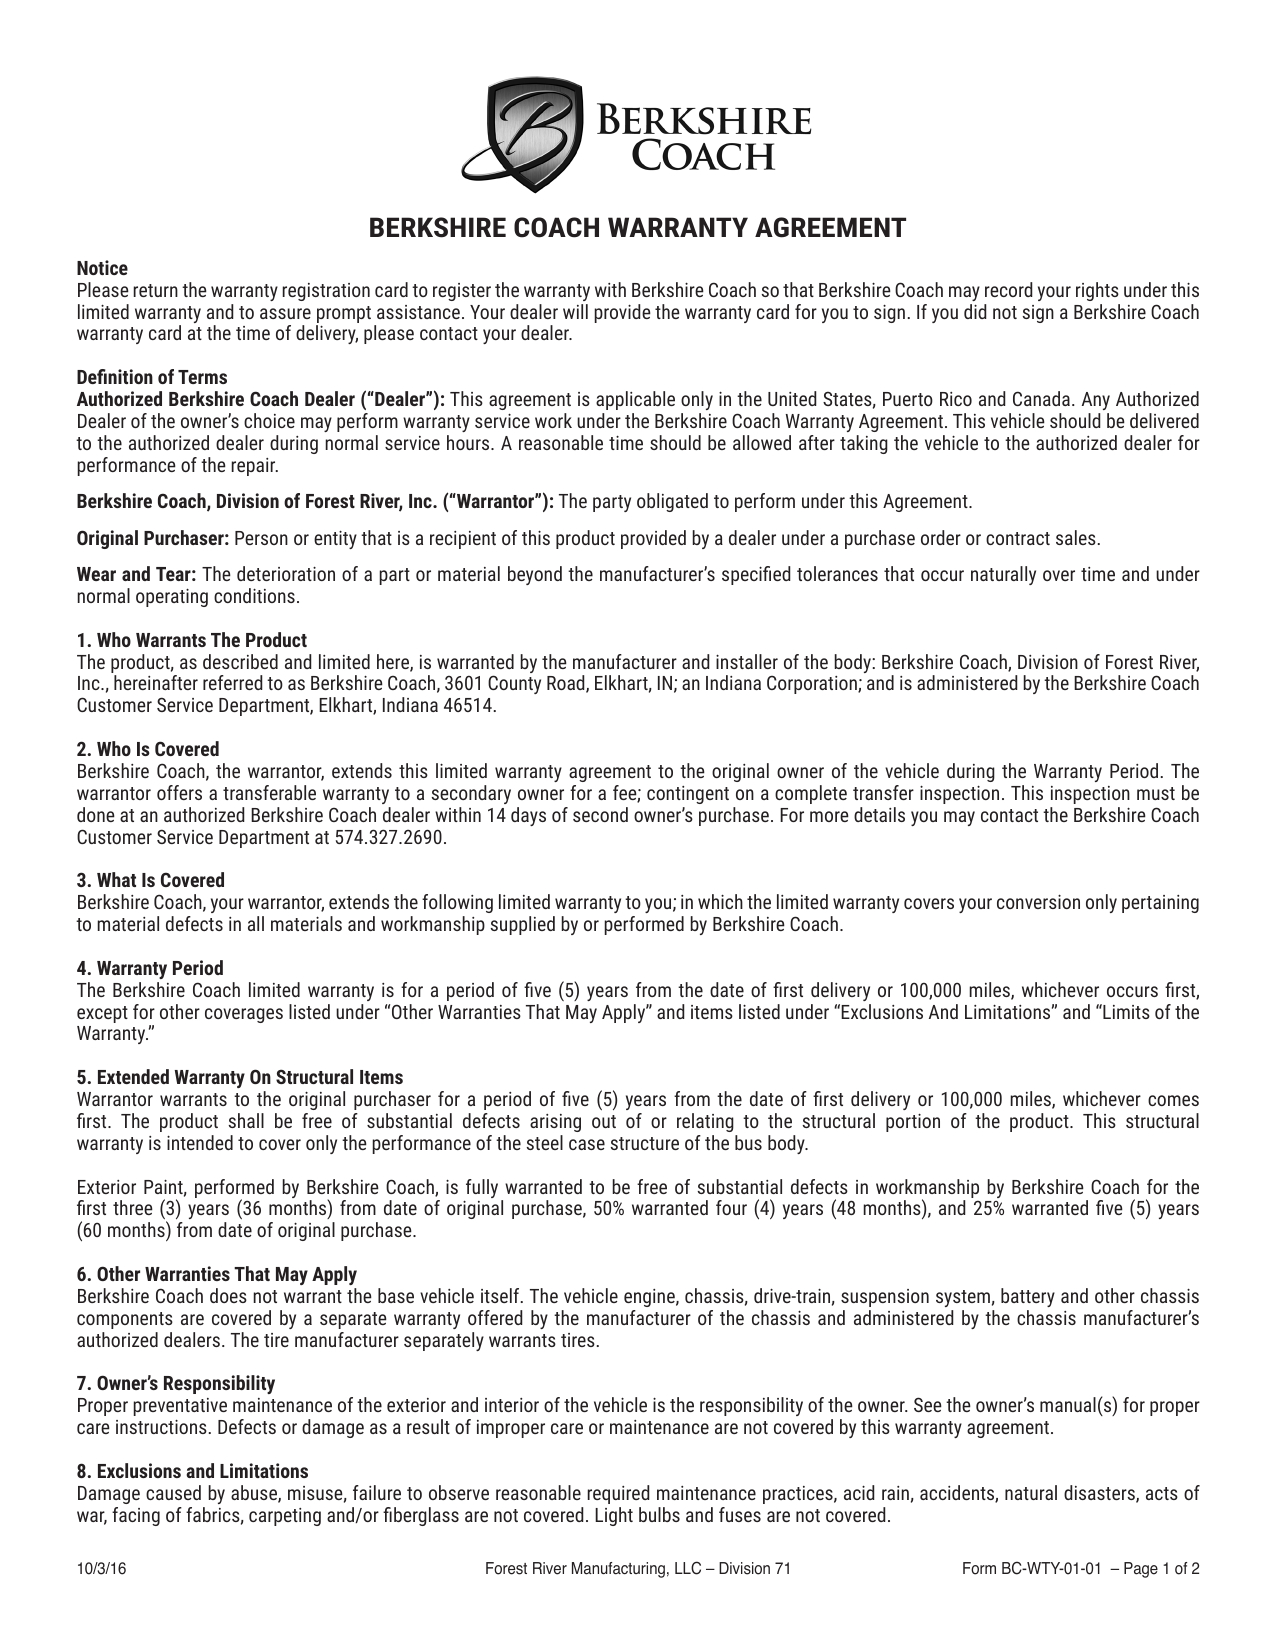 Berkshire Coach Warranty Agreement  Manualzz Intended For Product Warranty Agreement Template